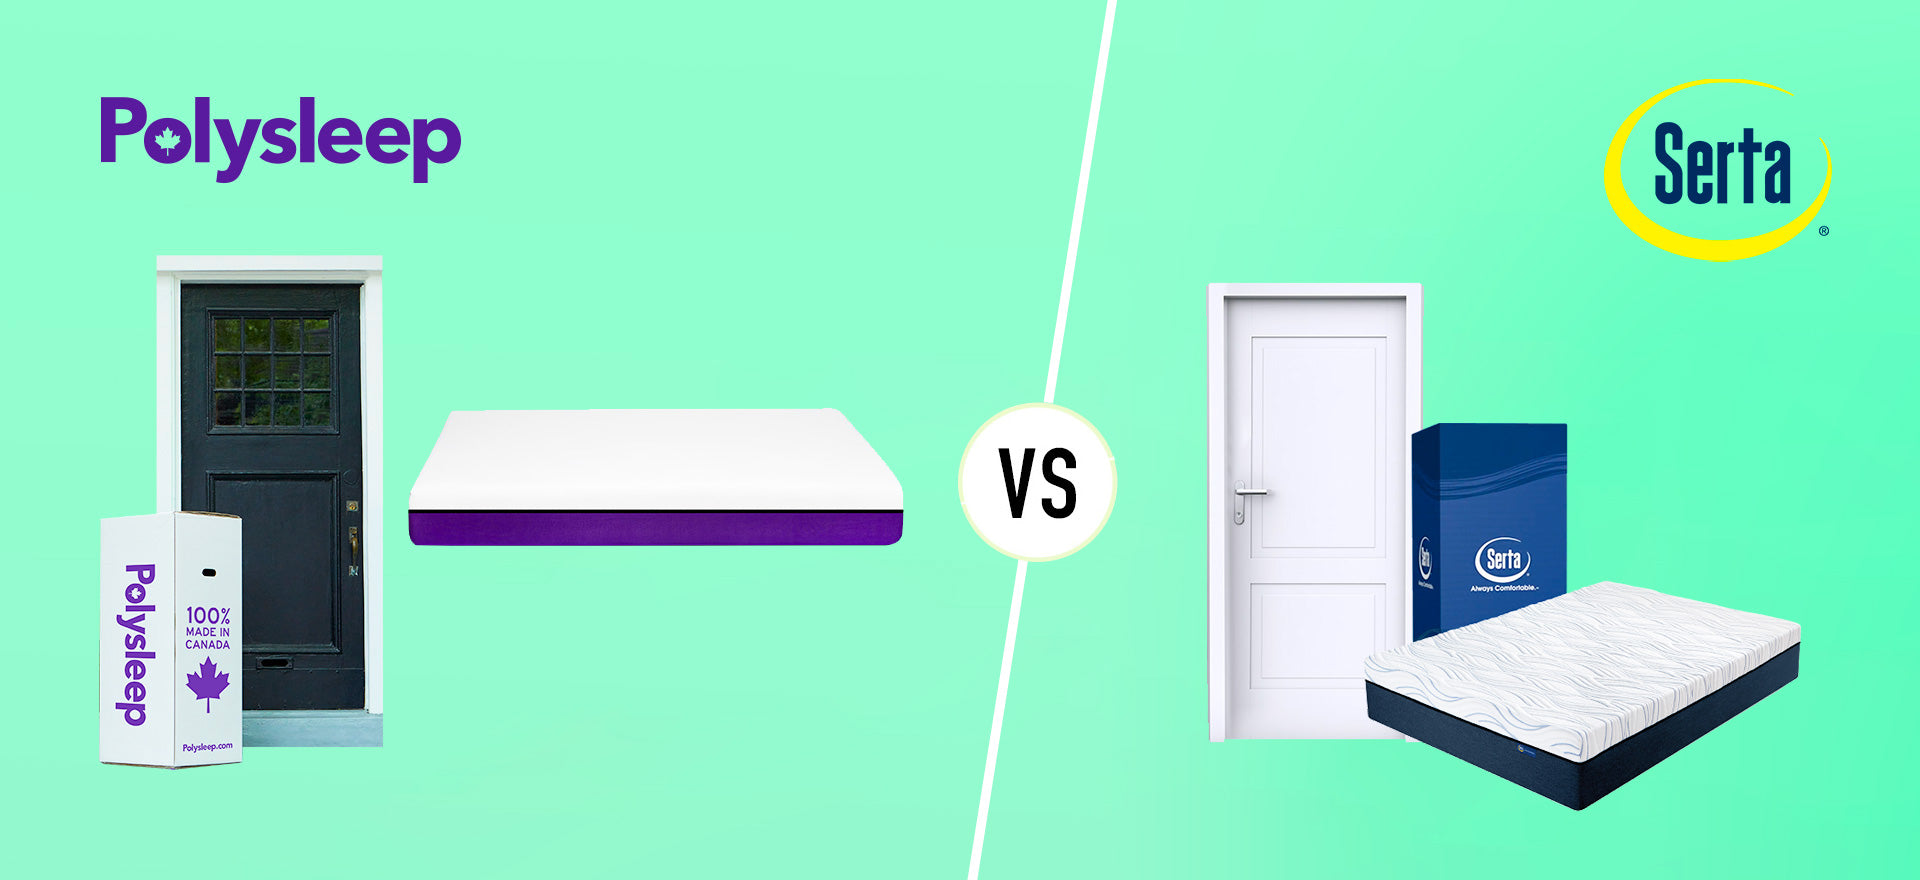 Serta Mattress vs Polysleep Mattress